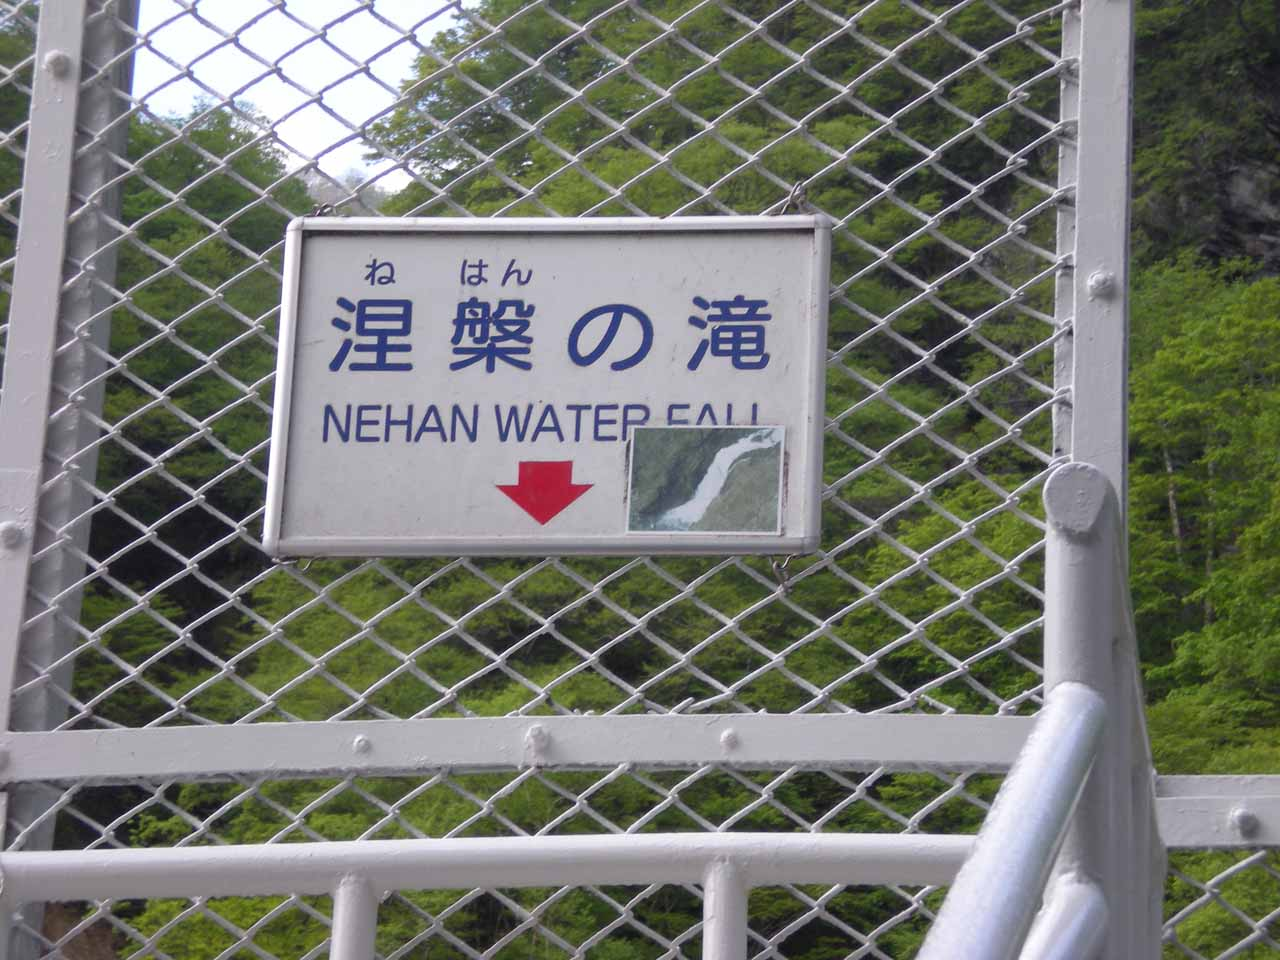 Nehan Waterfall sign